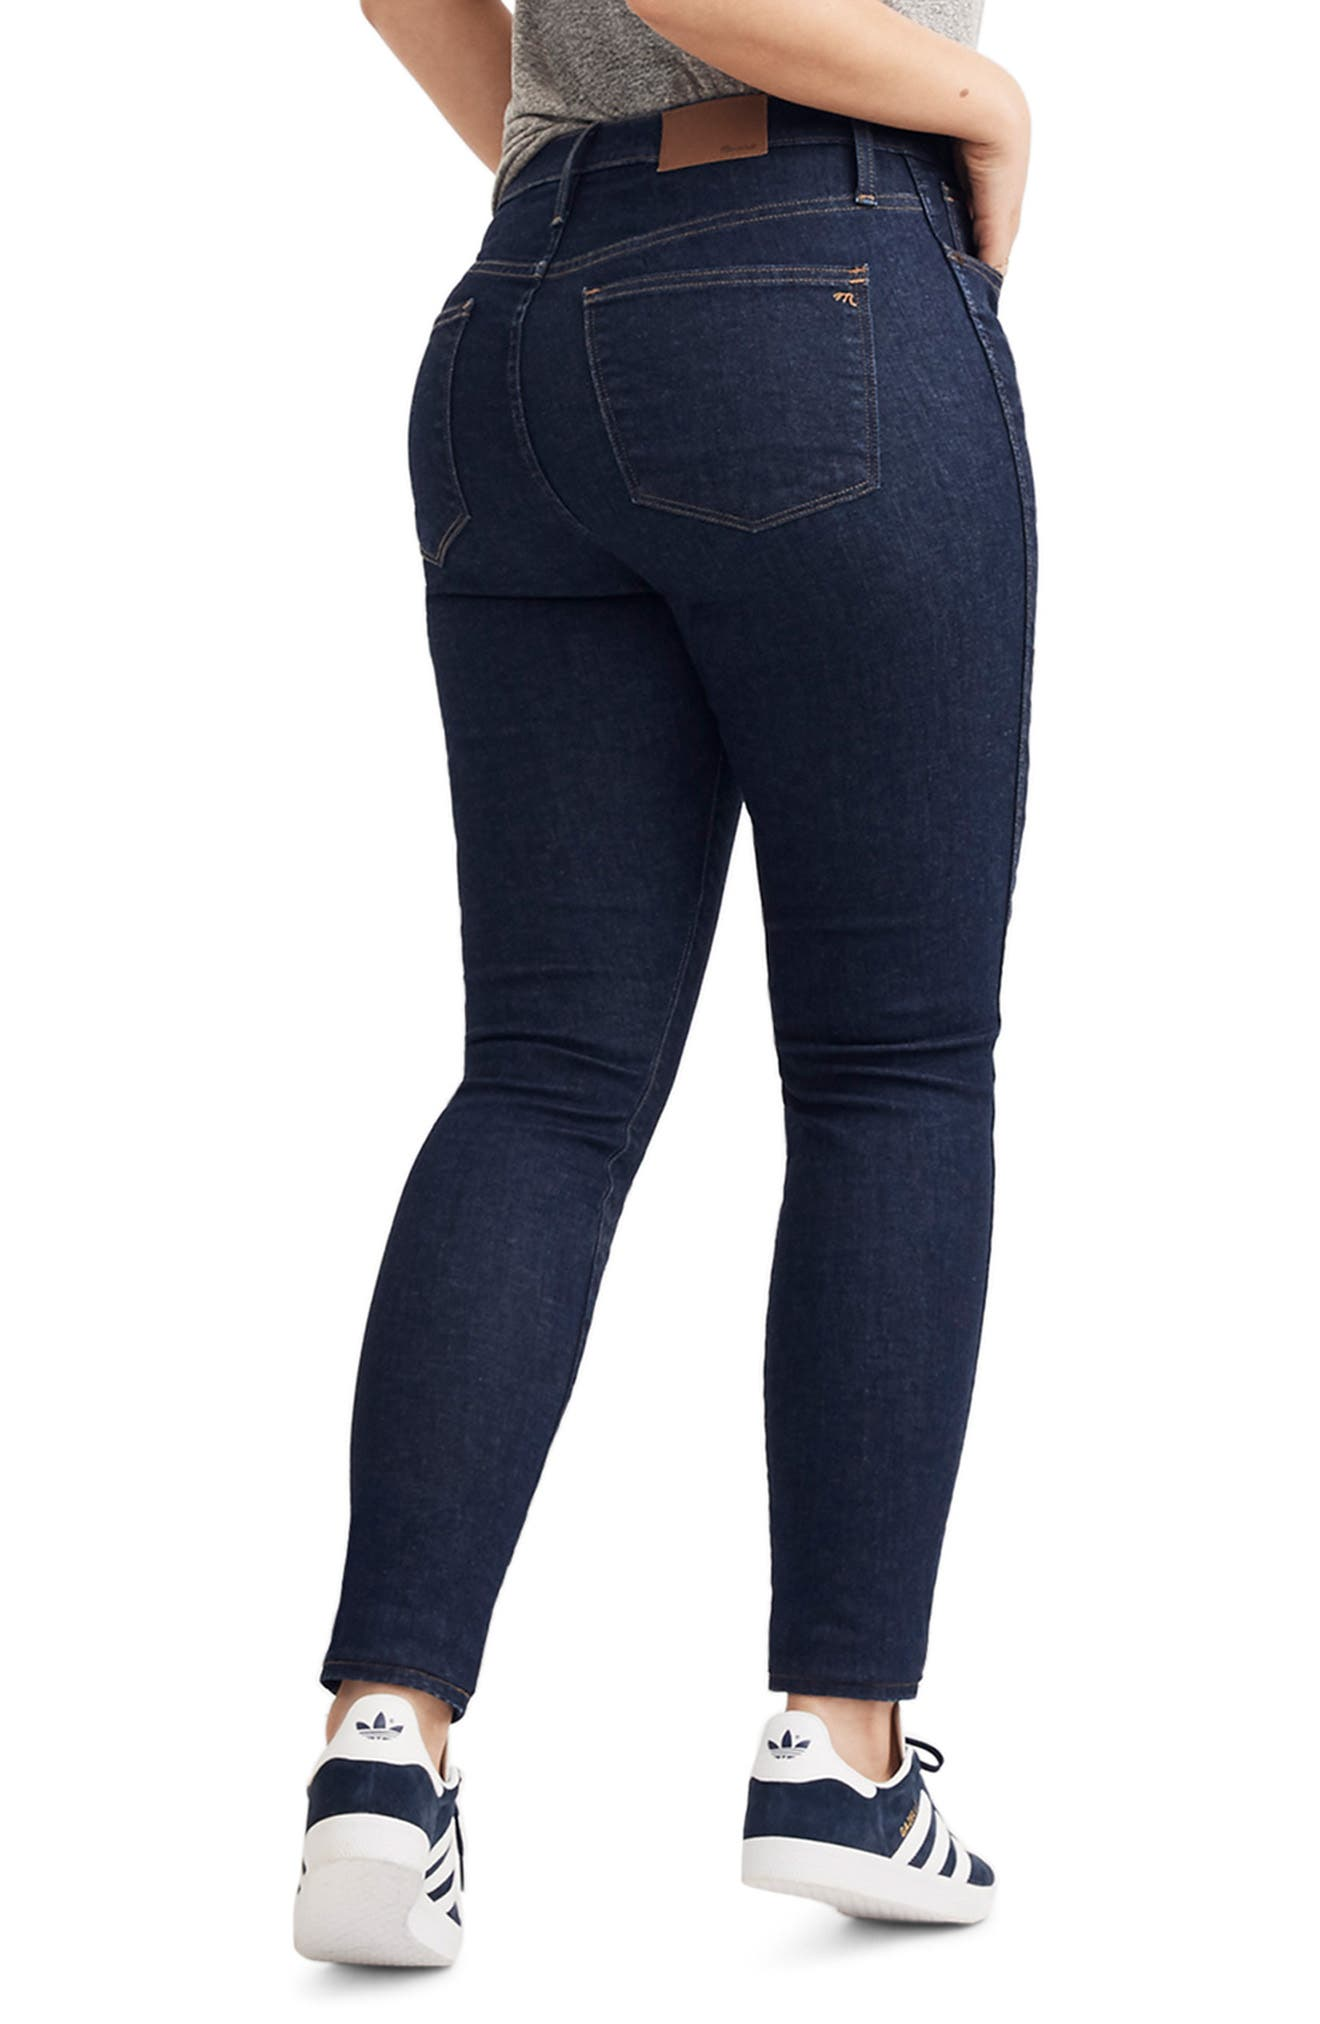 10-Inch High Waist Skinny Jeans,                             Alternate thumbnail 9, color,                             400